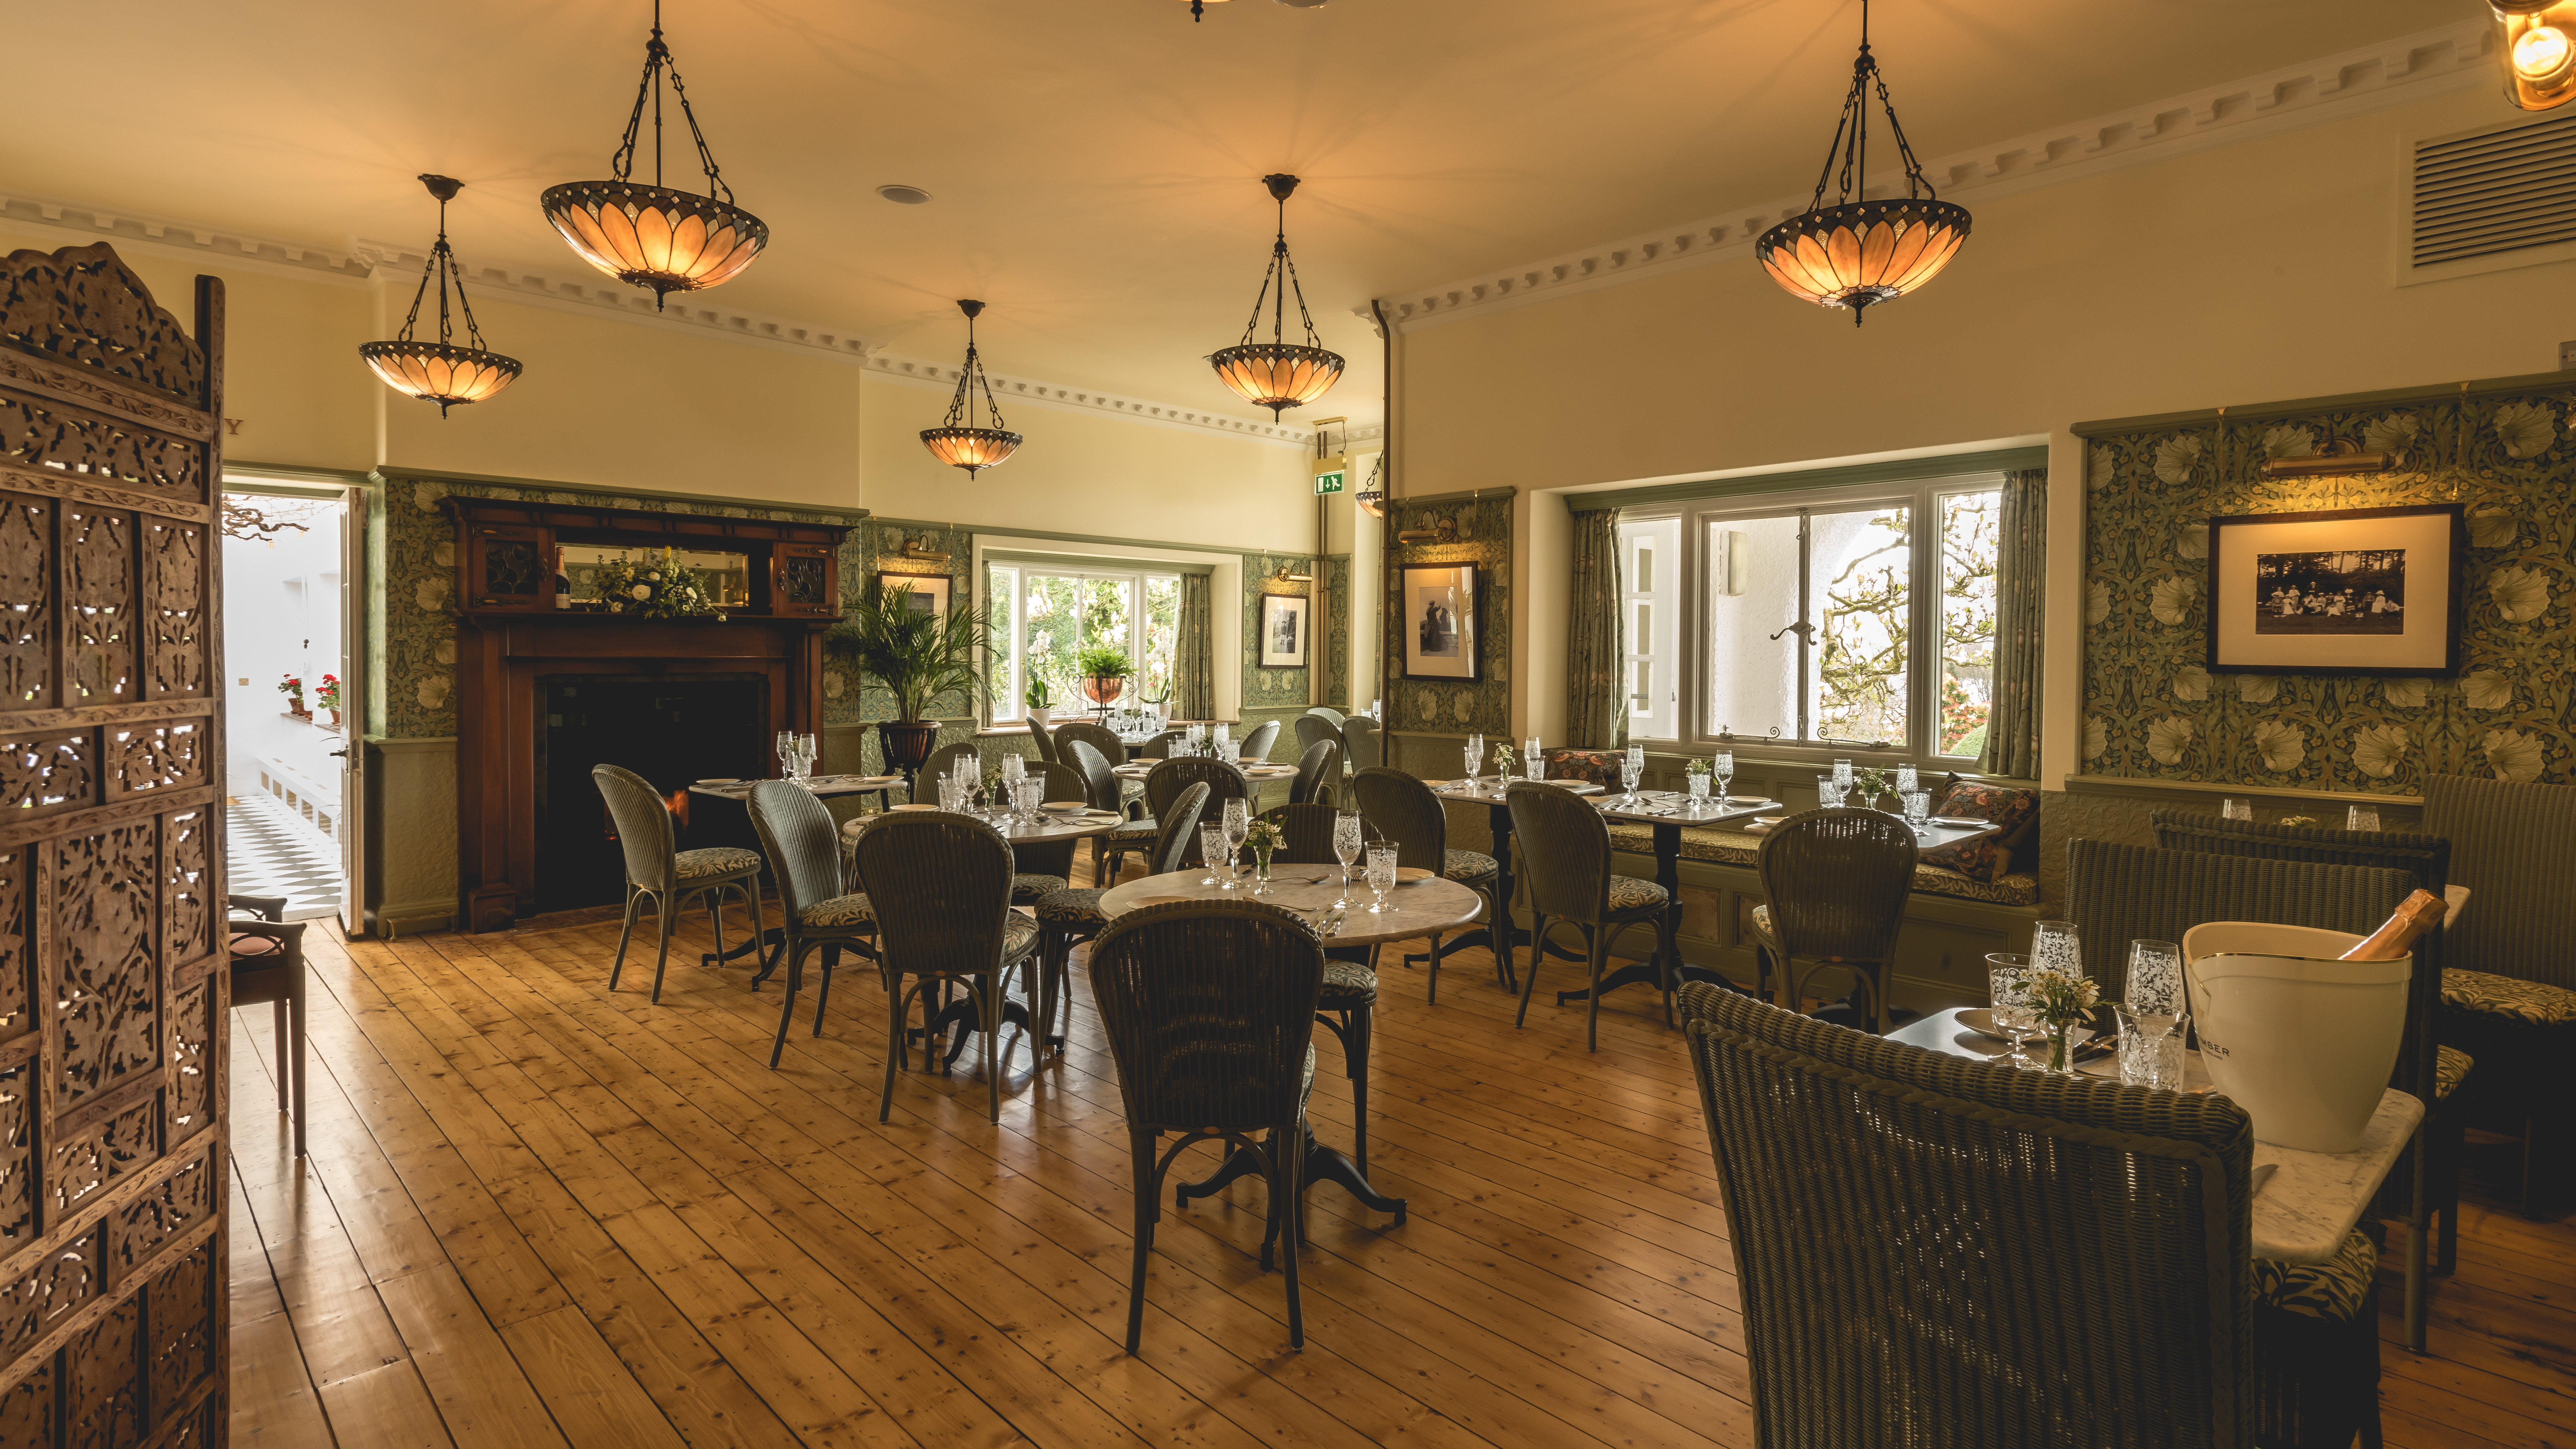 Brockhole's Gaddum Restaurant opens on a fine spring evening